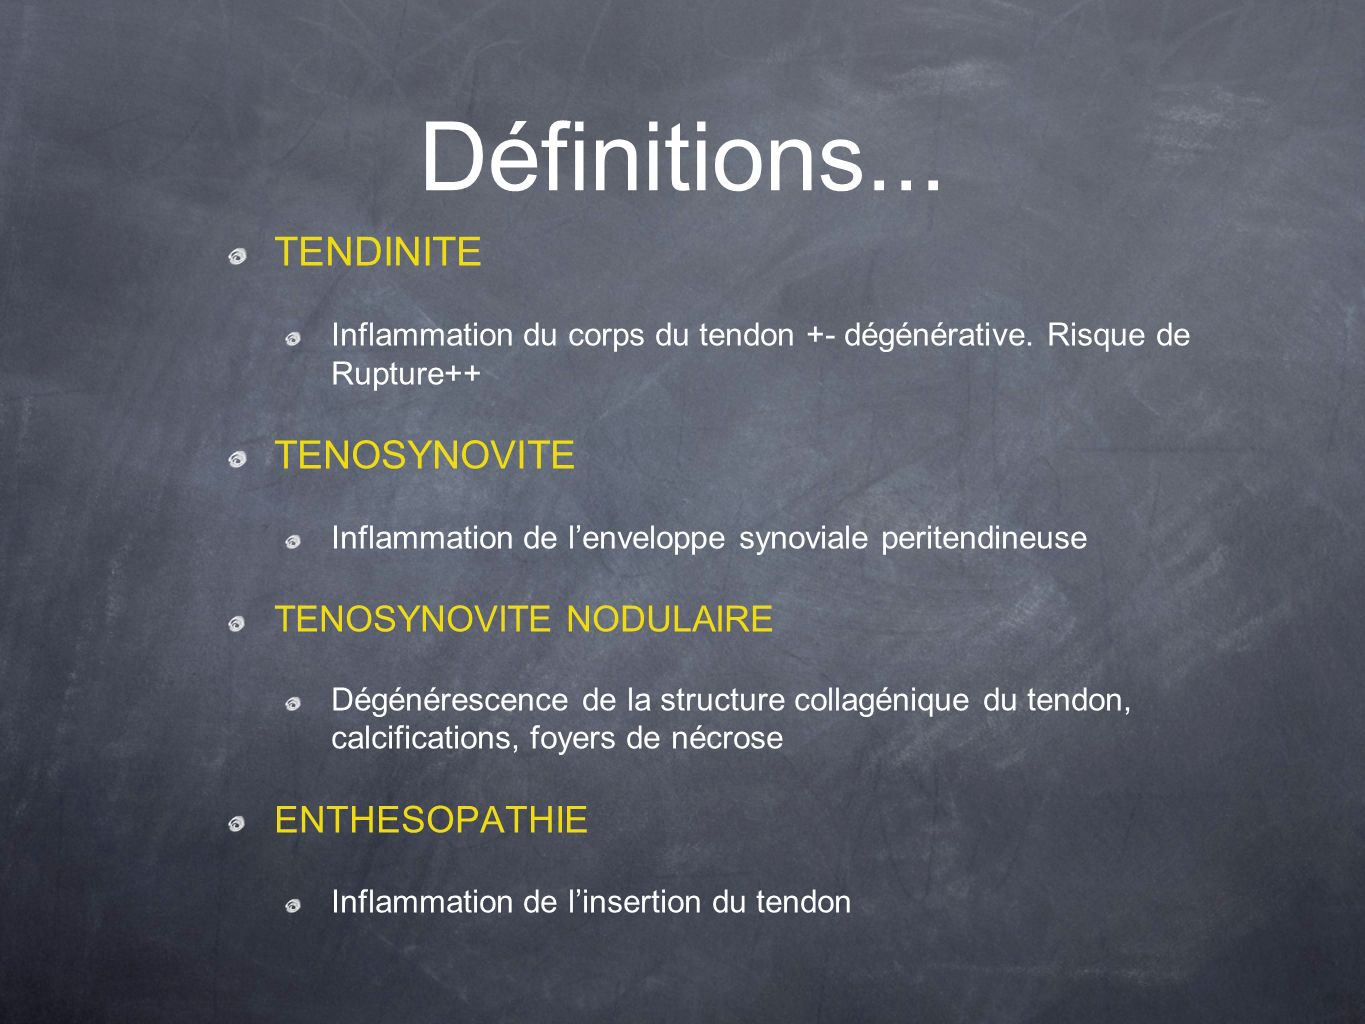 Définitions... TENDINITE TENOSYNOVITE ENTHESOPATHIE